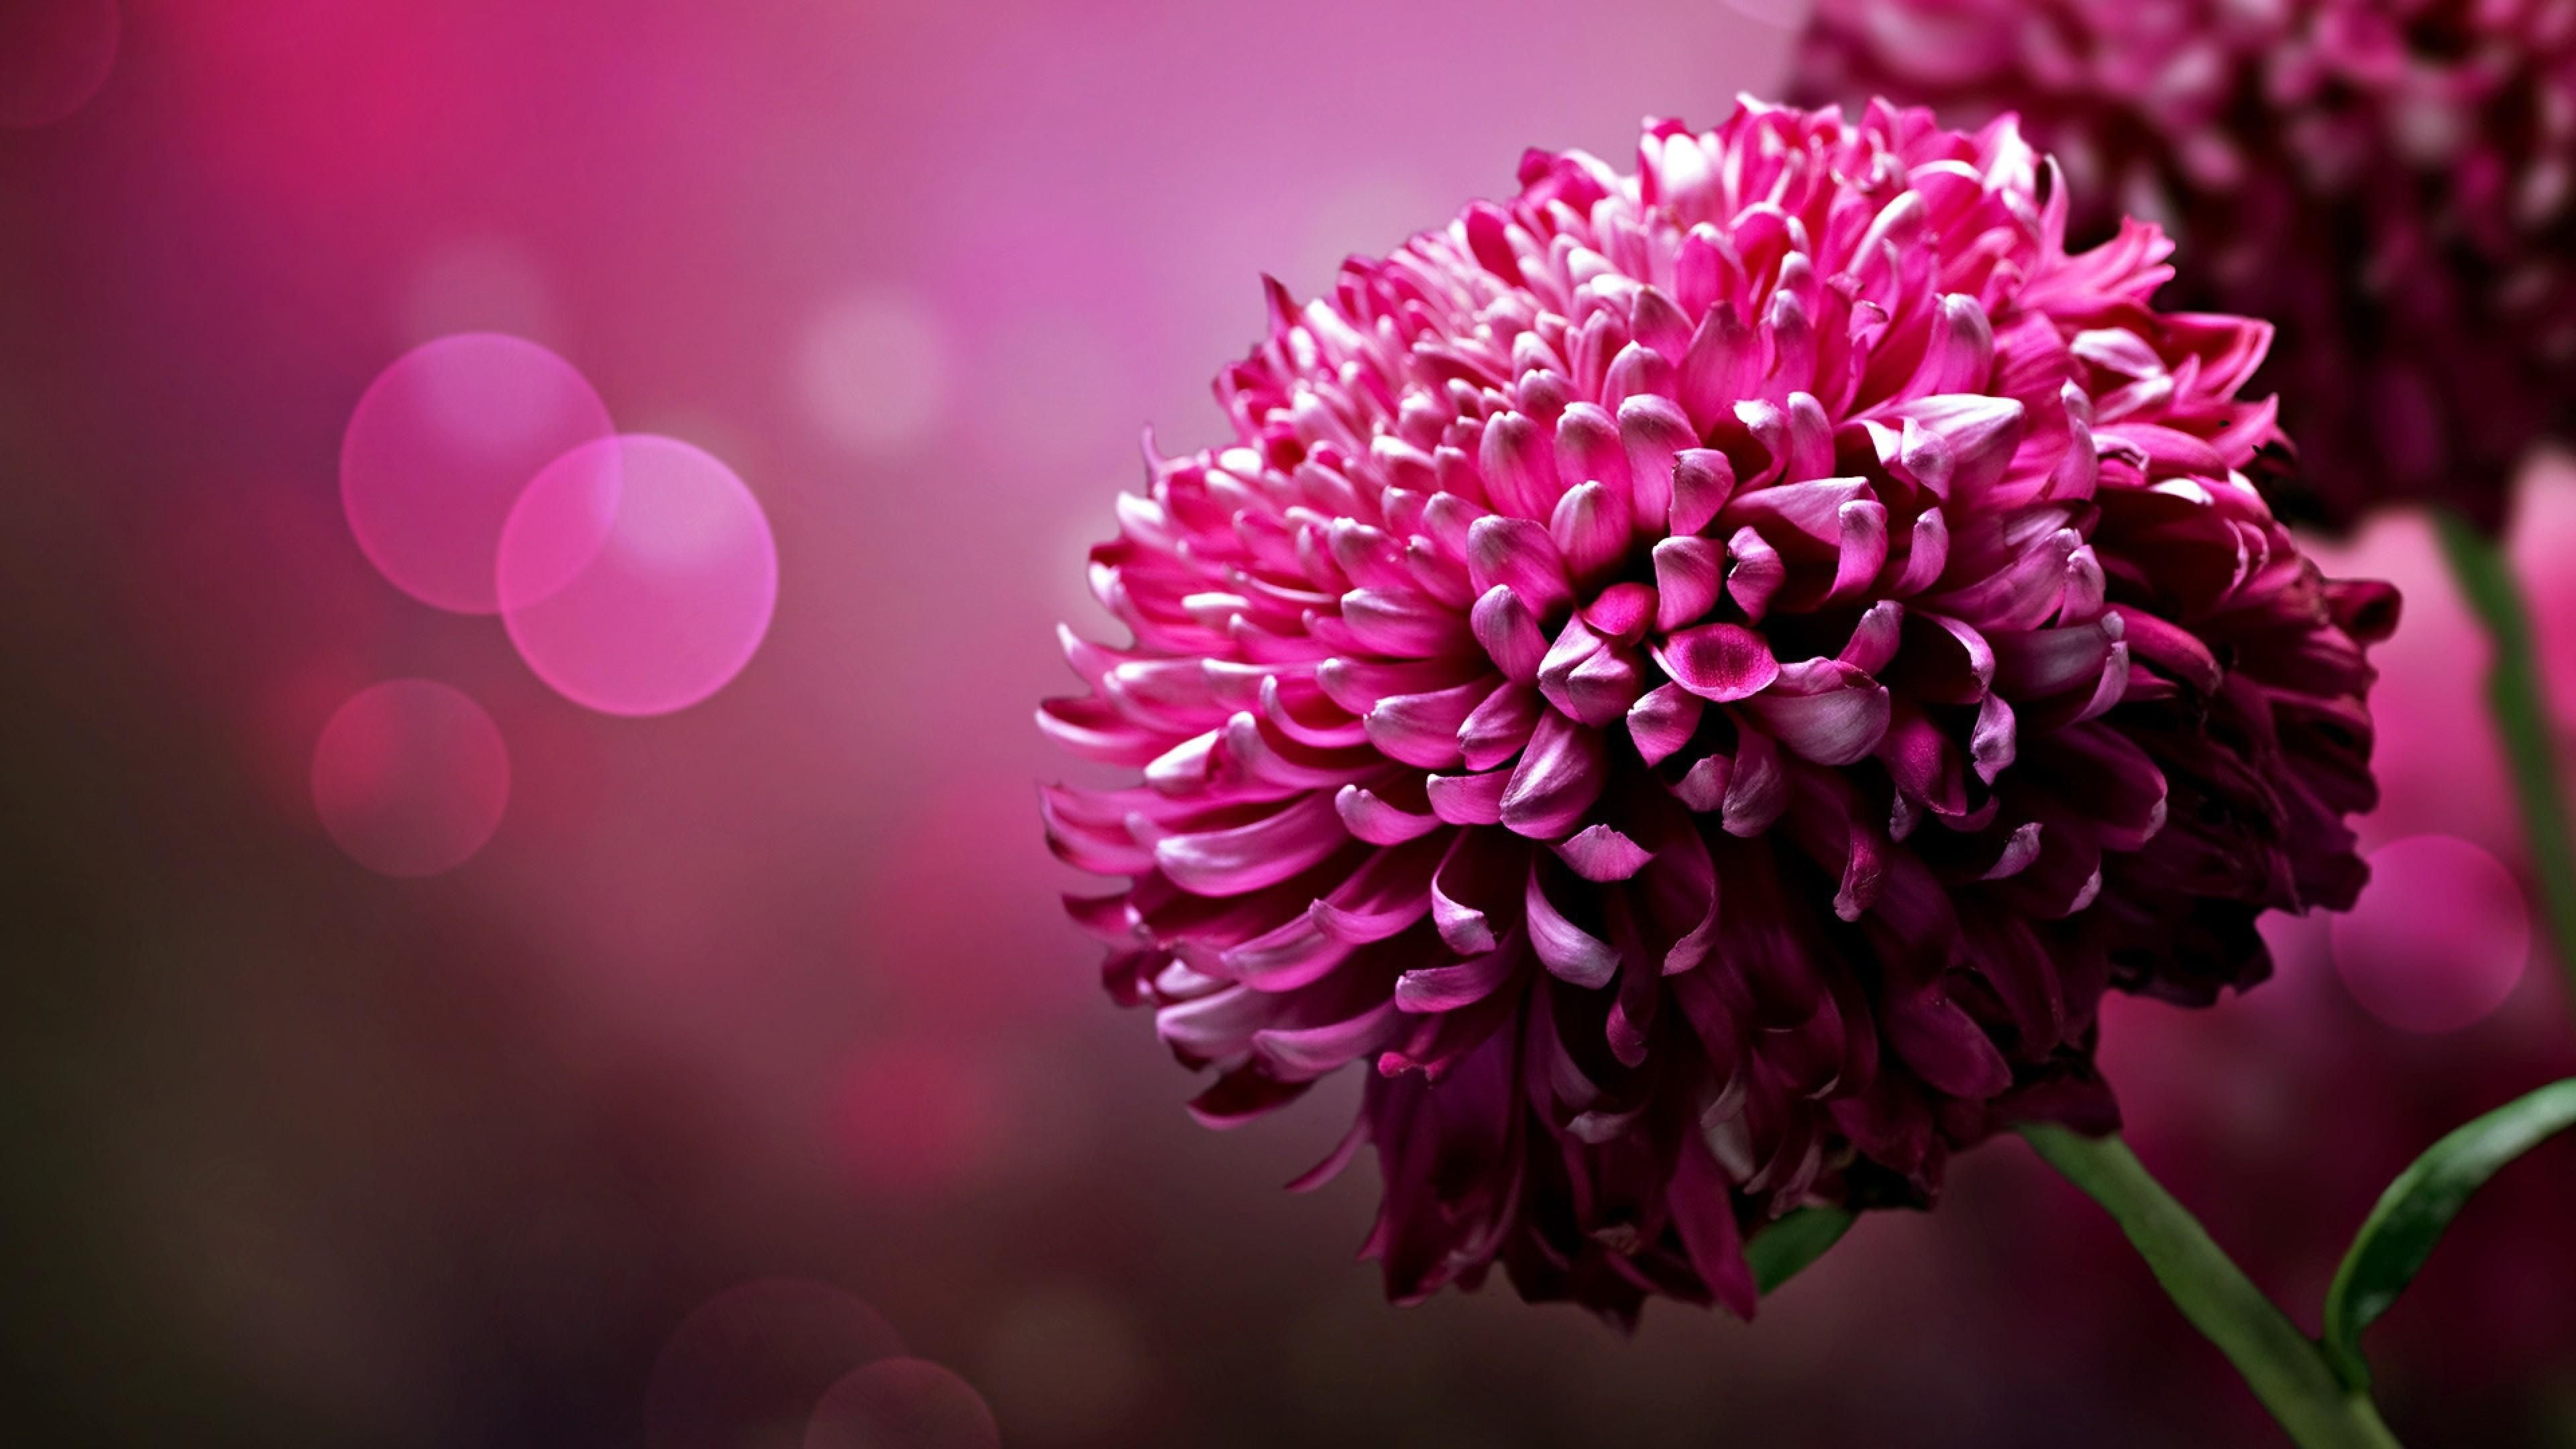 Pink Flowers Macro Flowers Bokeh Hq Wallpaper Amazing Beauty